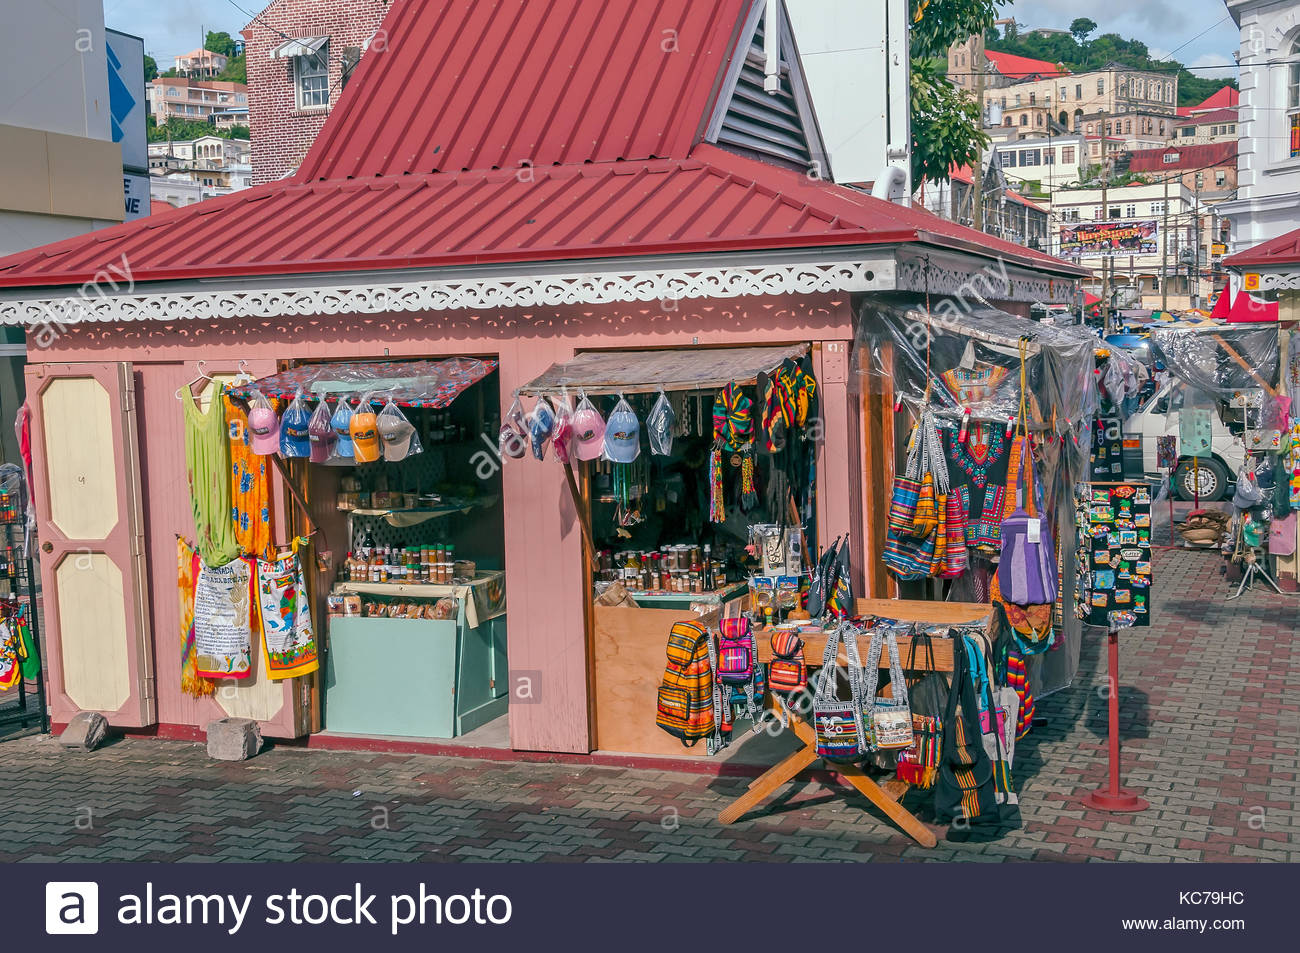 St George's Market Square St George's, Grenada St Georges Market Square Stock Photos & Grenada St Georges ...